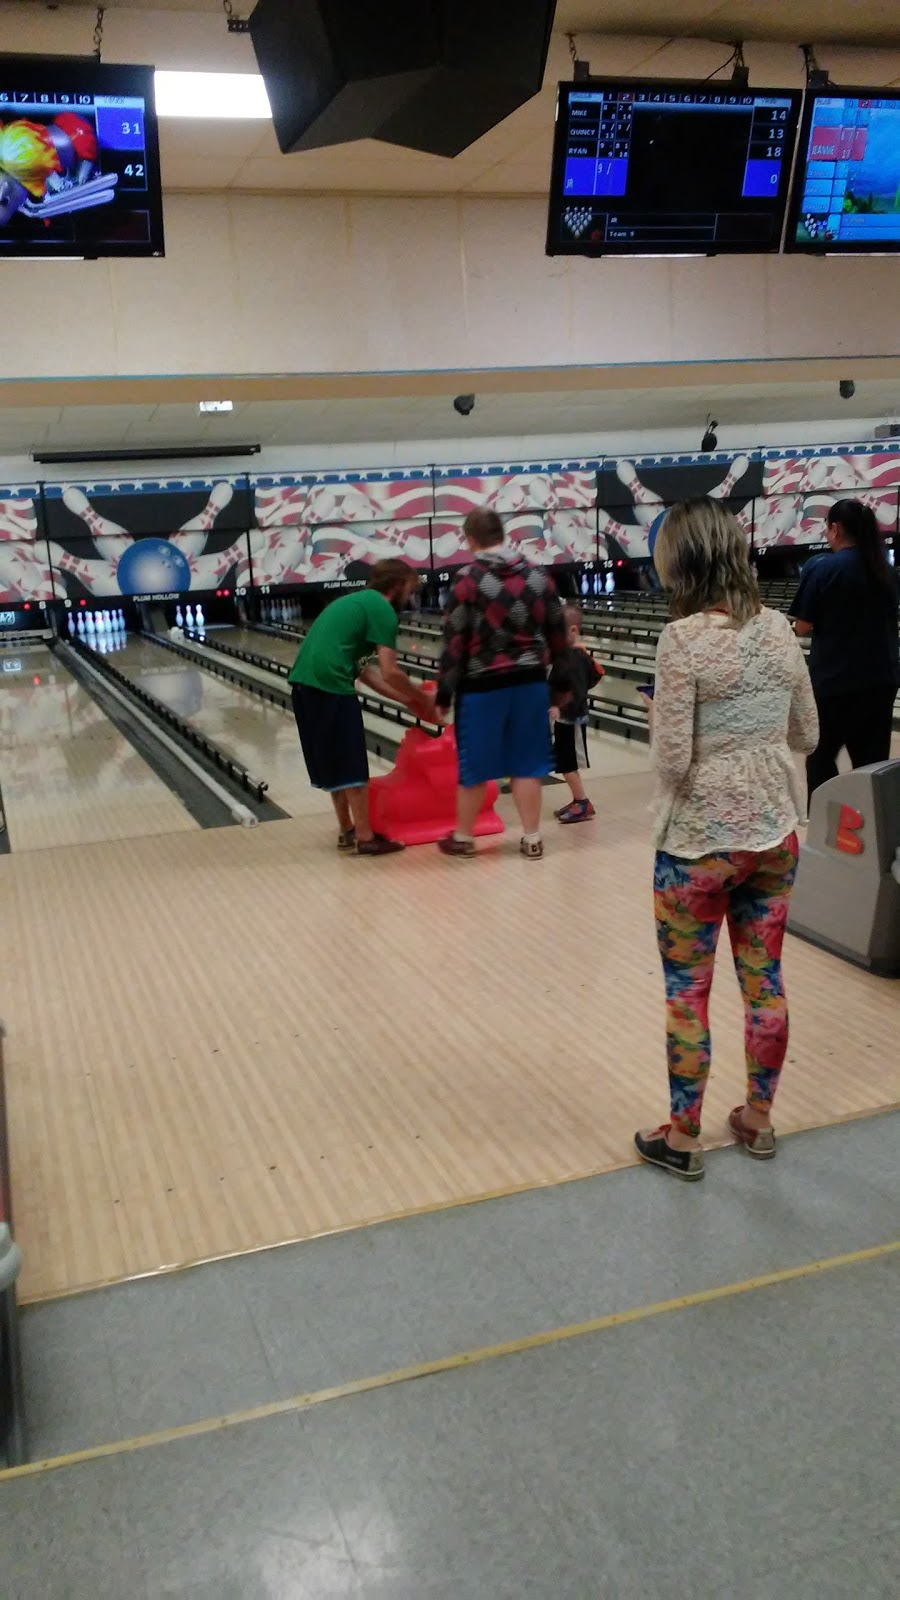 Plum Hollow Family Center - bowling alley  | Photo 4 of 10 | Address: 1933 IL-26, Dixon, IL 61021, USA | Phone: (815) 271-4101